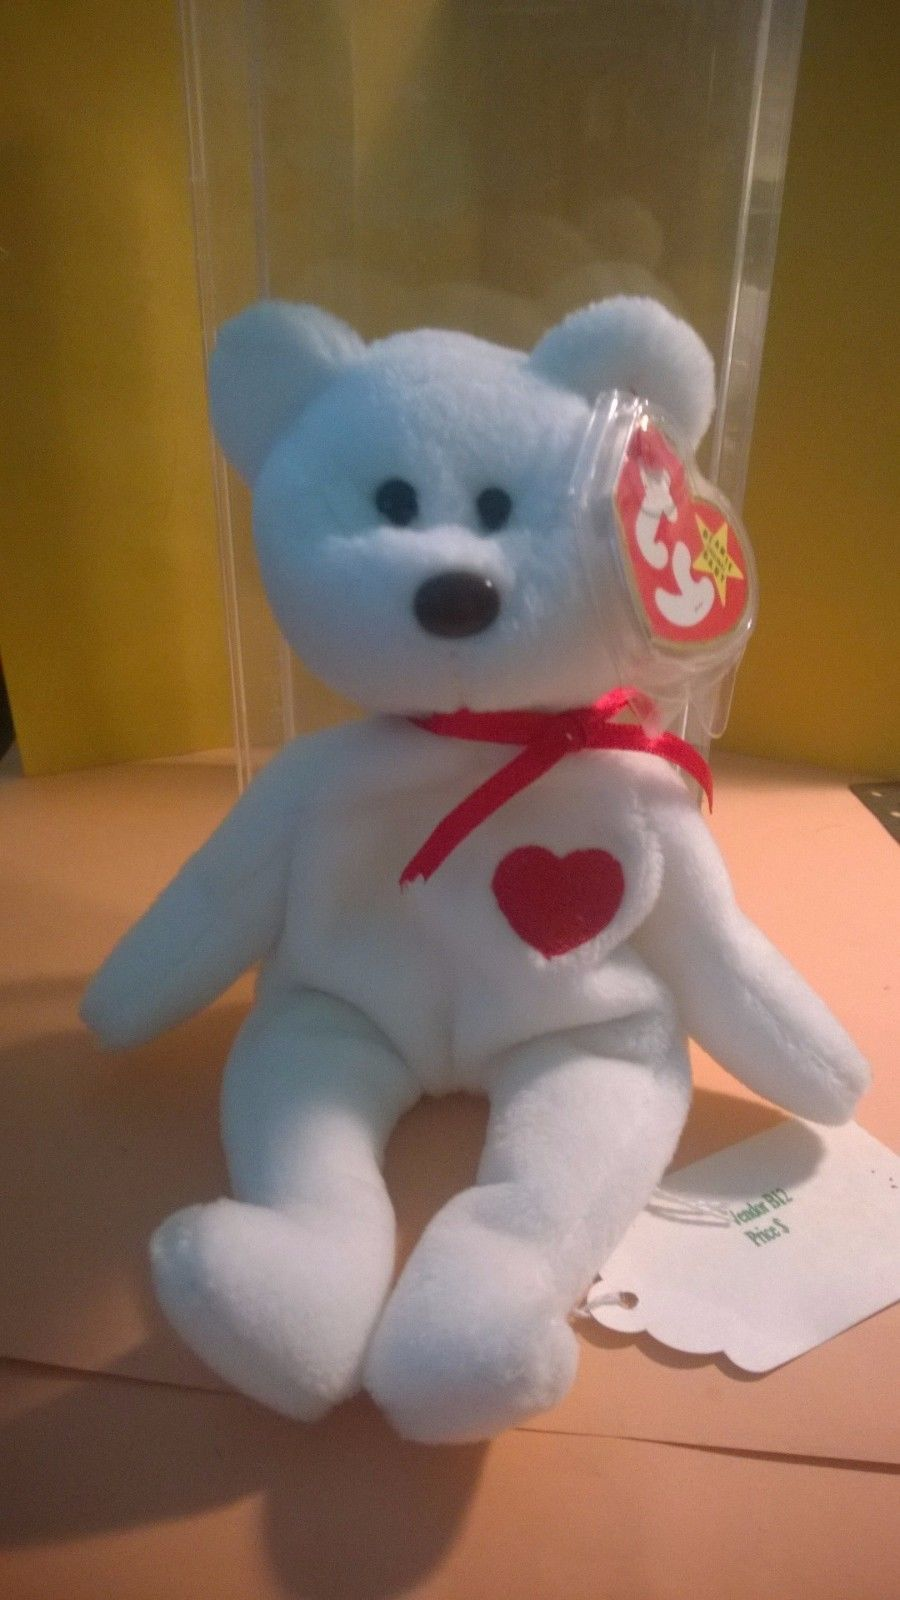 a66ba684cae S l1600. S l1600. Very RARE RETIRED Ty Valentino Beanie Baby- with Swing Tag    Tush Tag Error. Very RARE RETIRED Ty Valentino Beanie ...